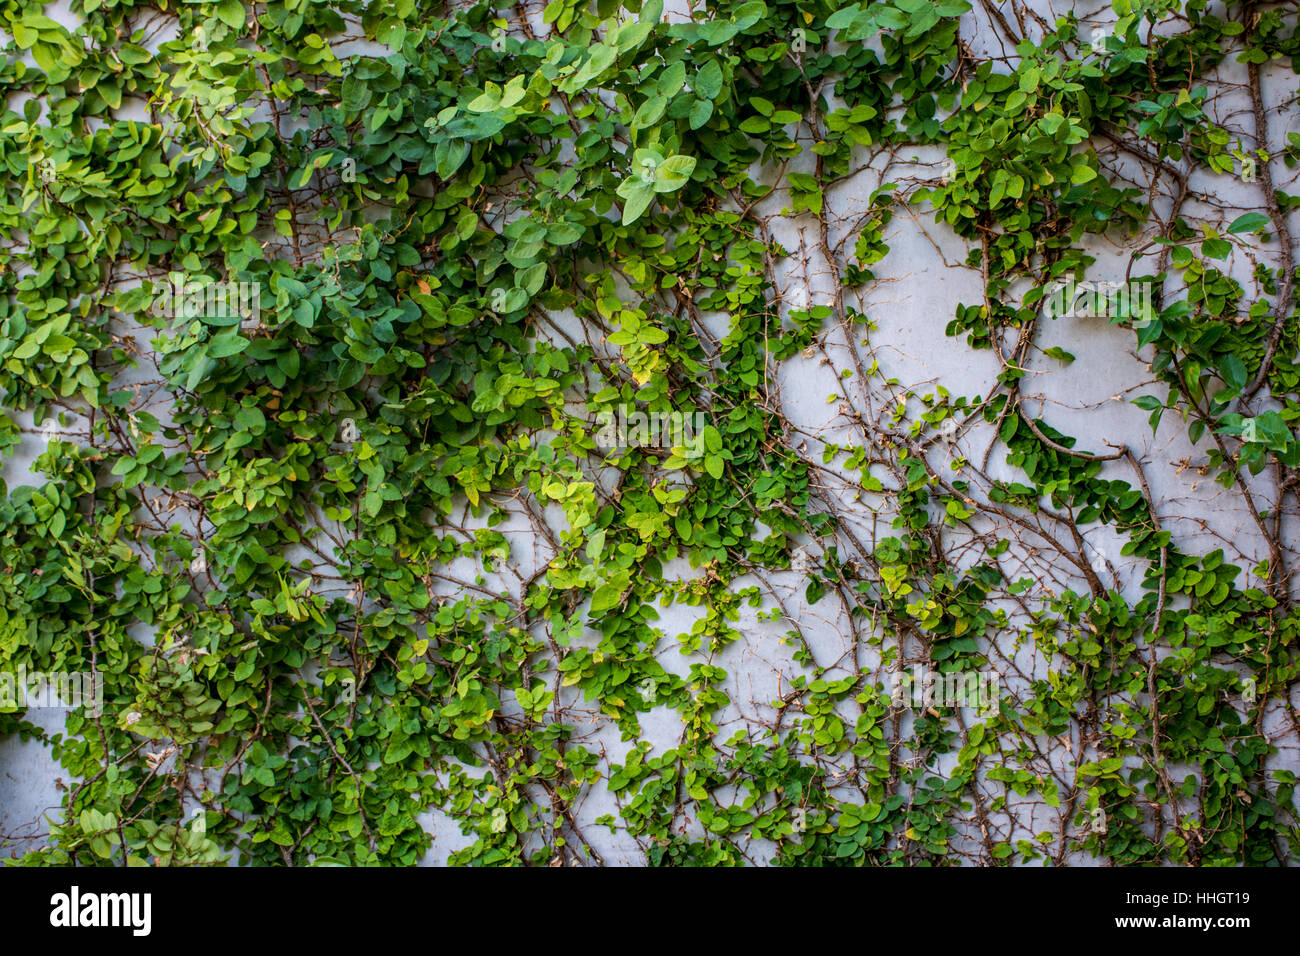 Green Plants Natural Background, Plants climbing a wall - Stock Image